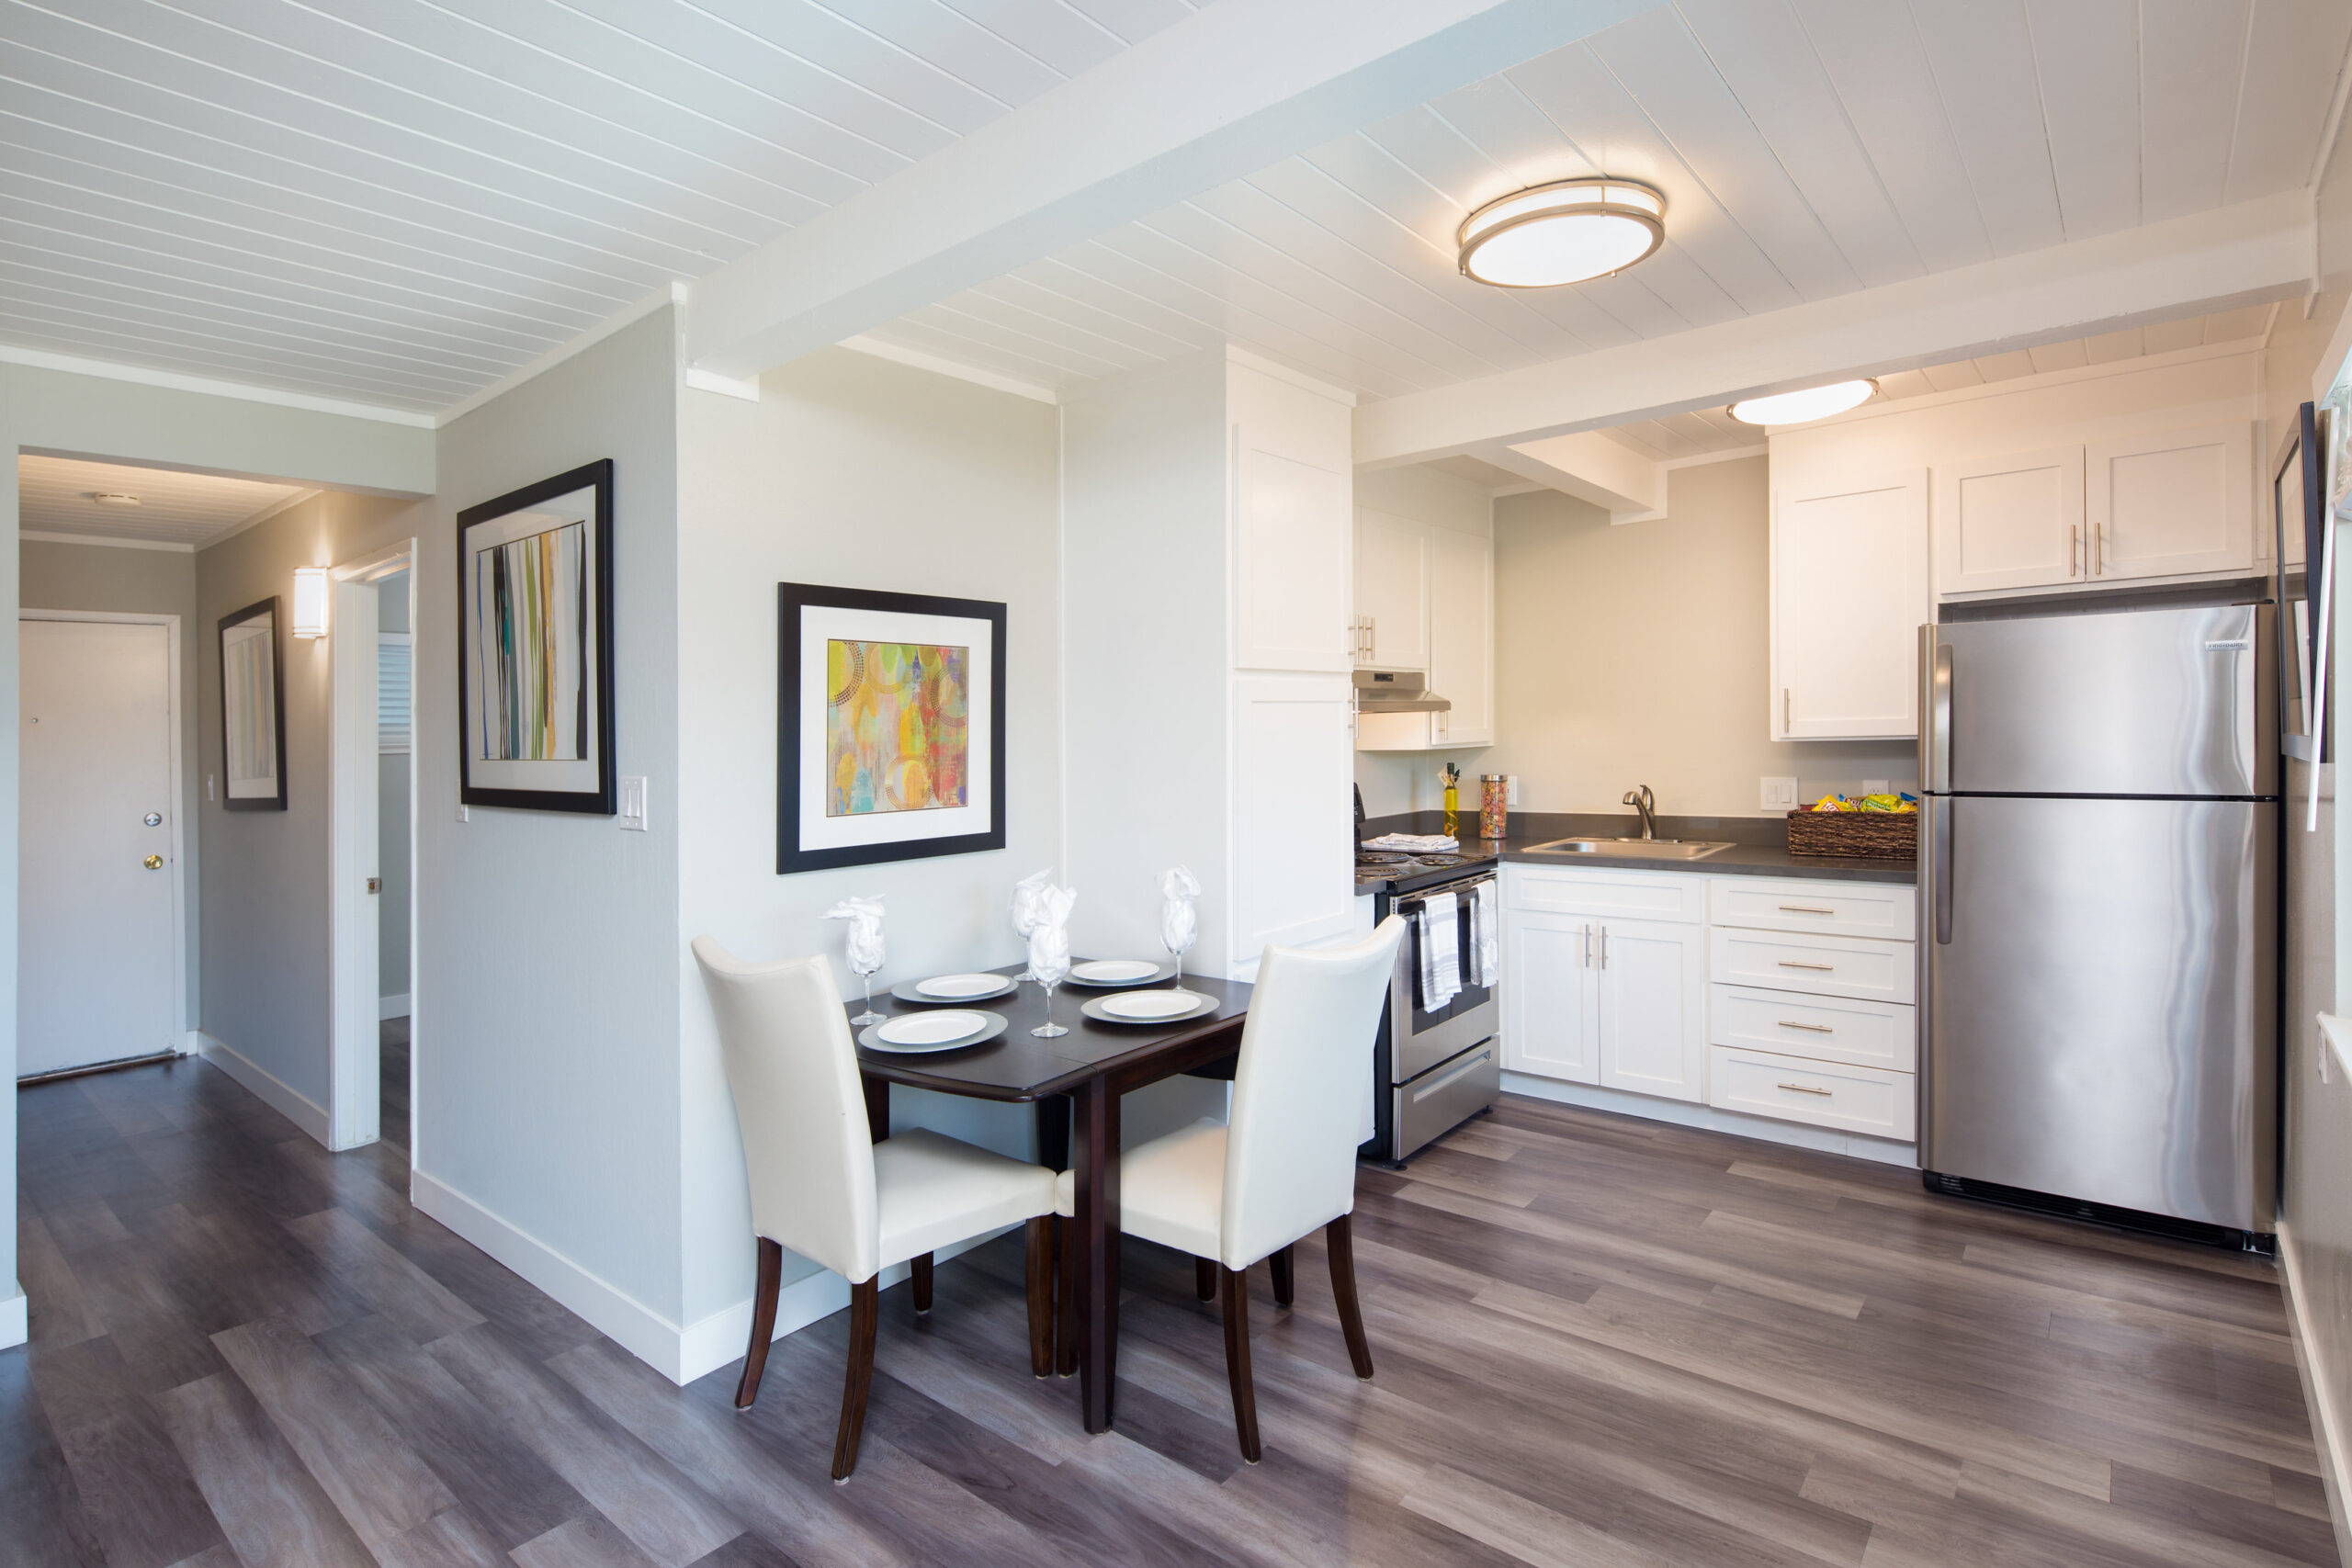 250 W. Jackson | Kitchen | Valiance Capital